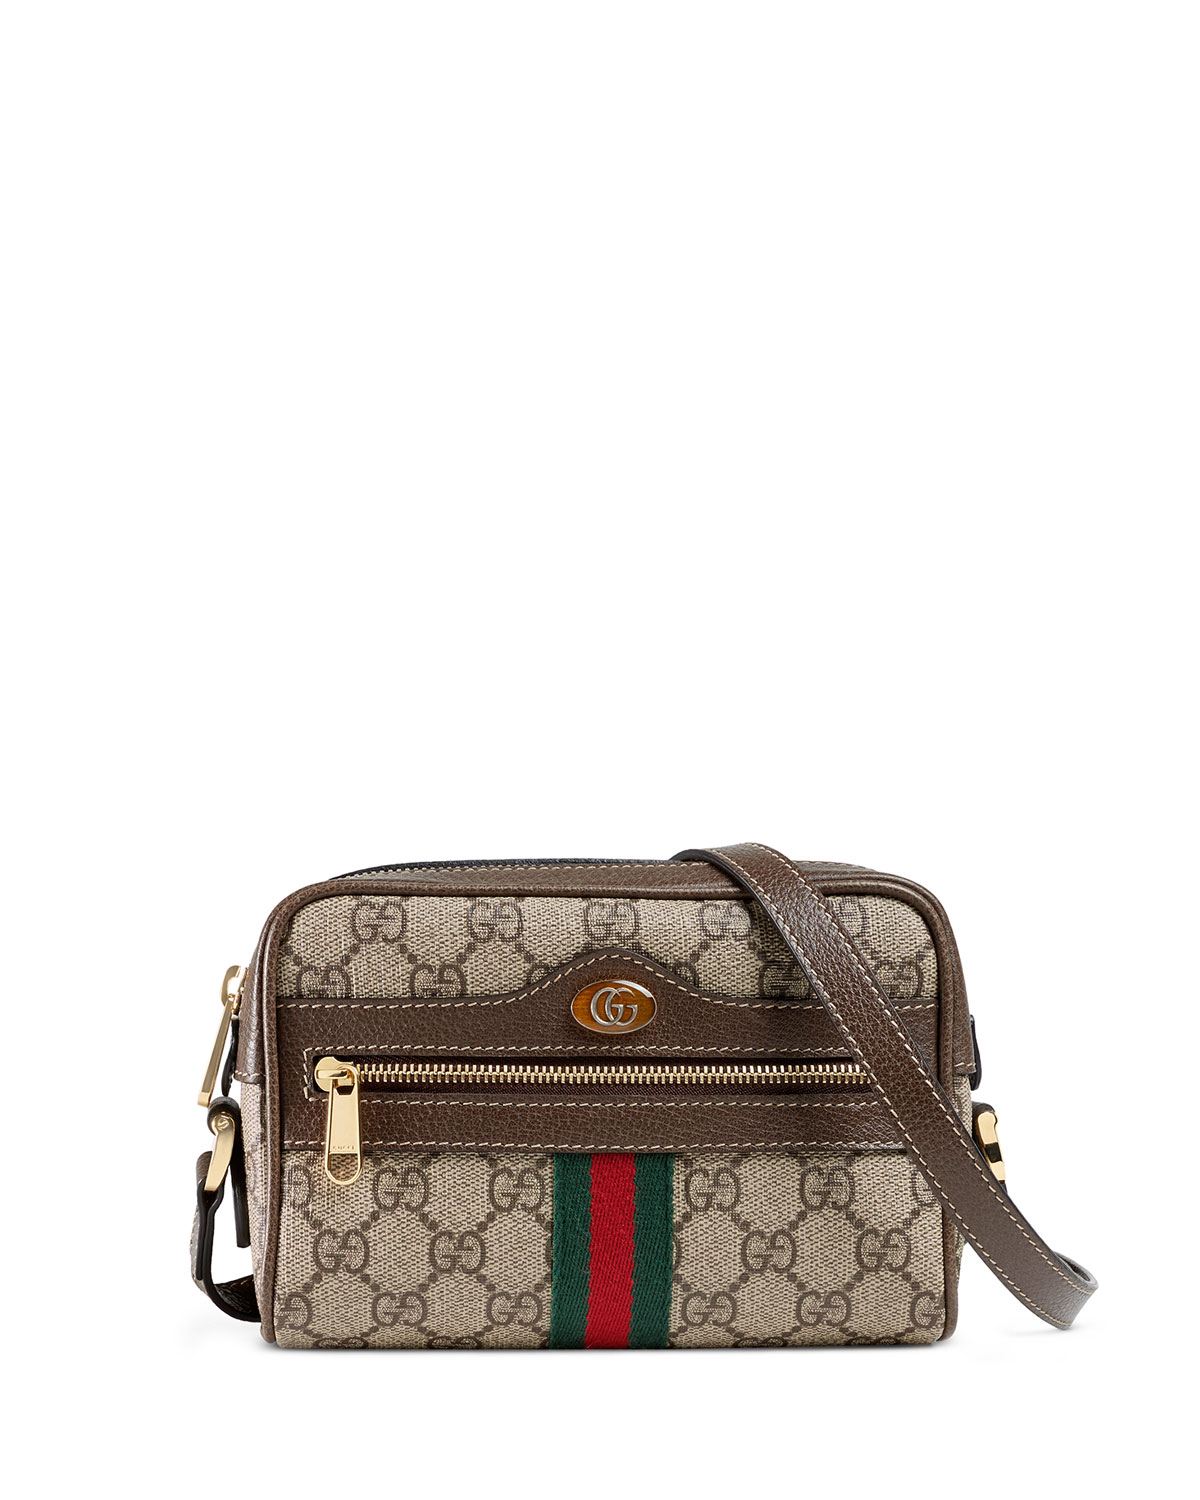 b65efd993 Gucci Ophidia Small GG Supreme Crossbody Bag | Neiman Marcus